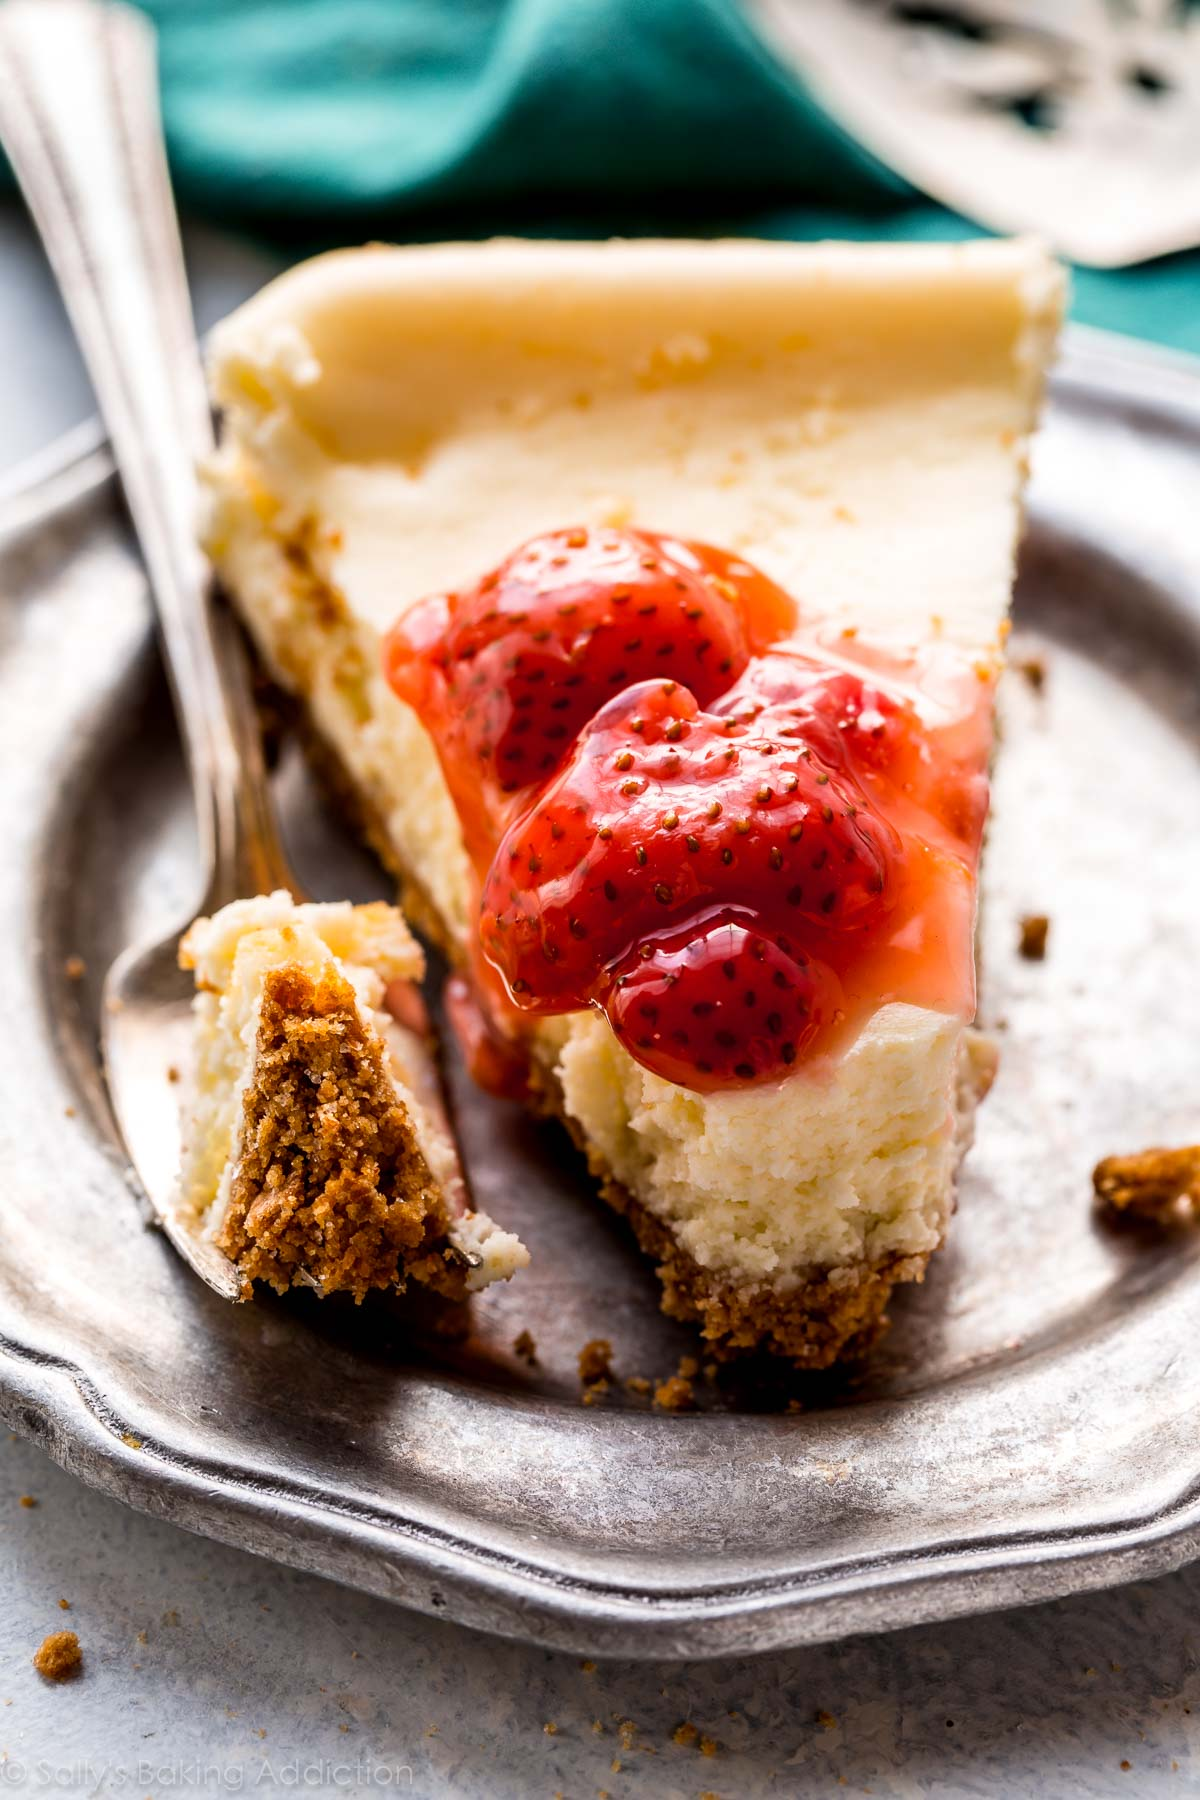 Small batch cheesecake is so easy! Make these 5 deliciously creamy and thick slices in a loaf pan! Recipe on sallysbakingaddiction.com